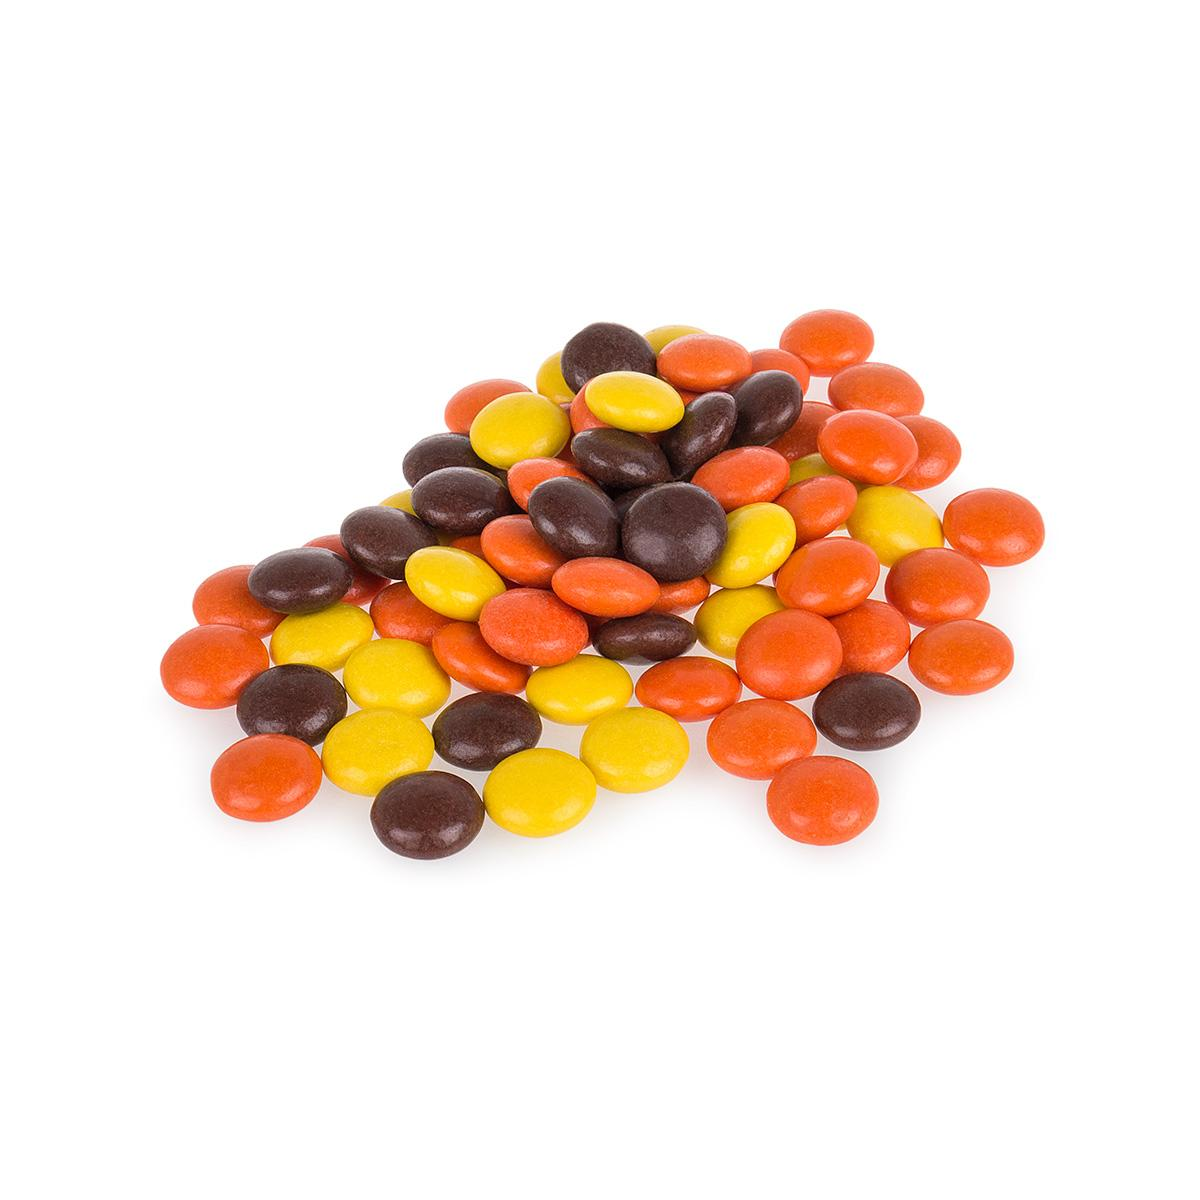 Reese's Pieces (43g)-9346